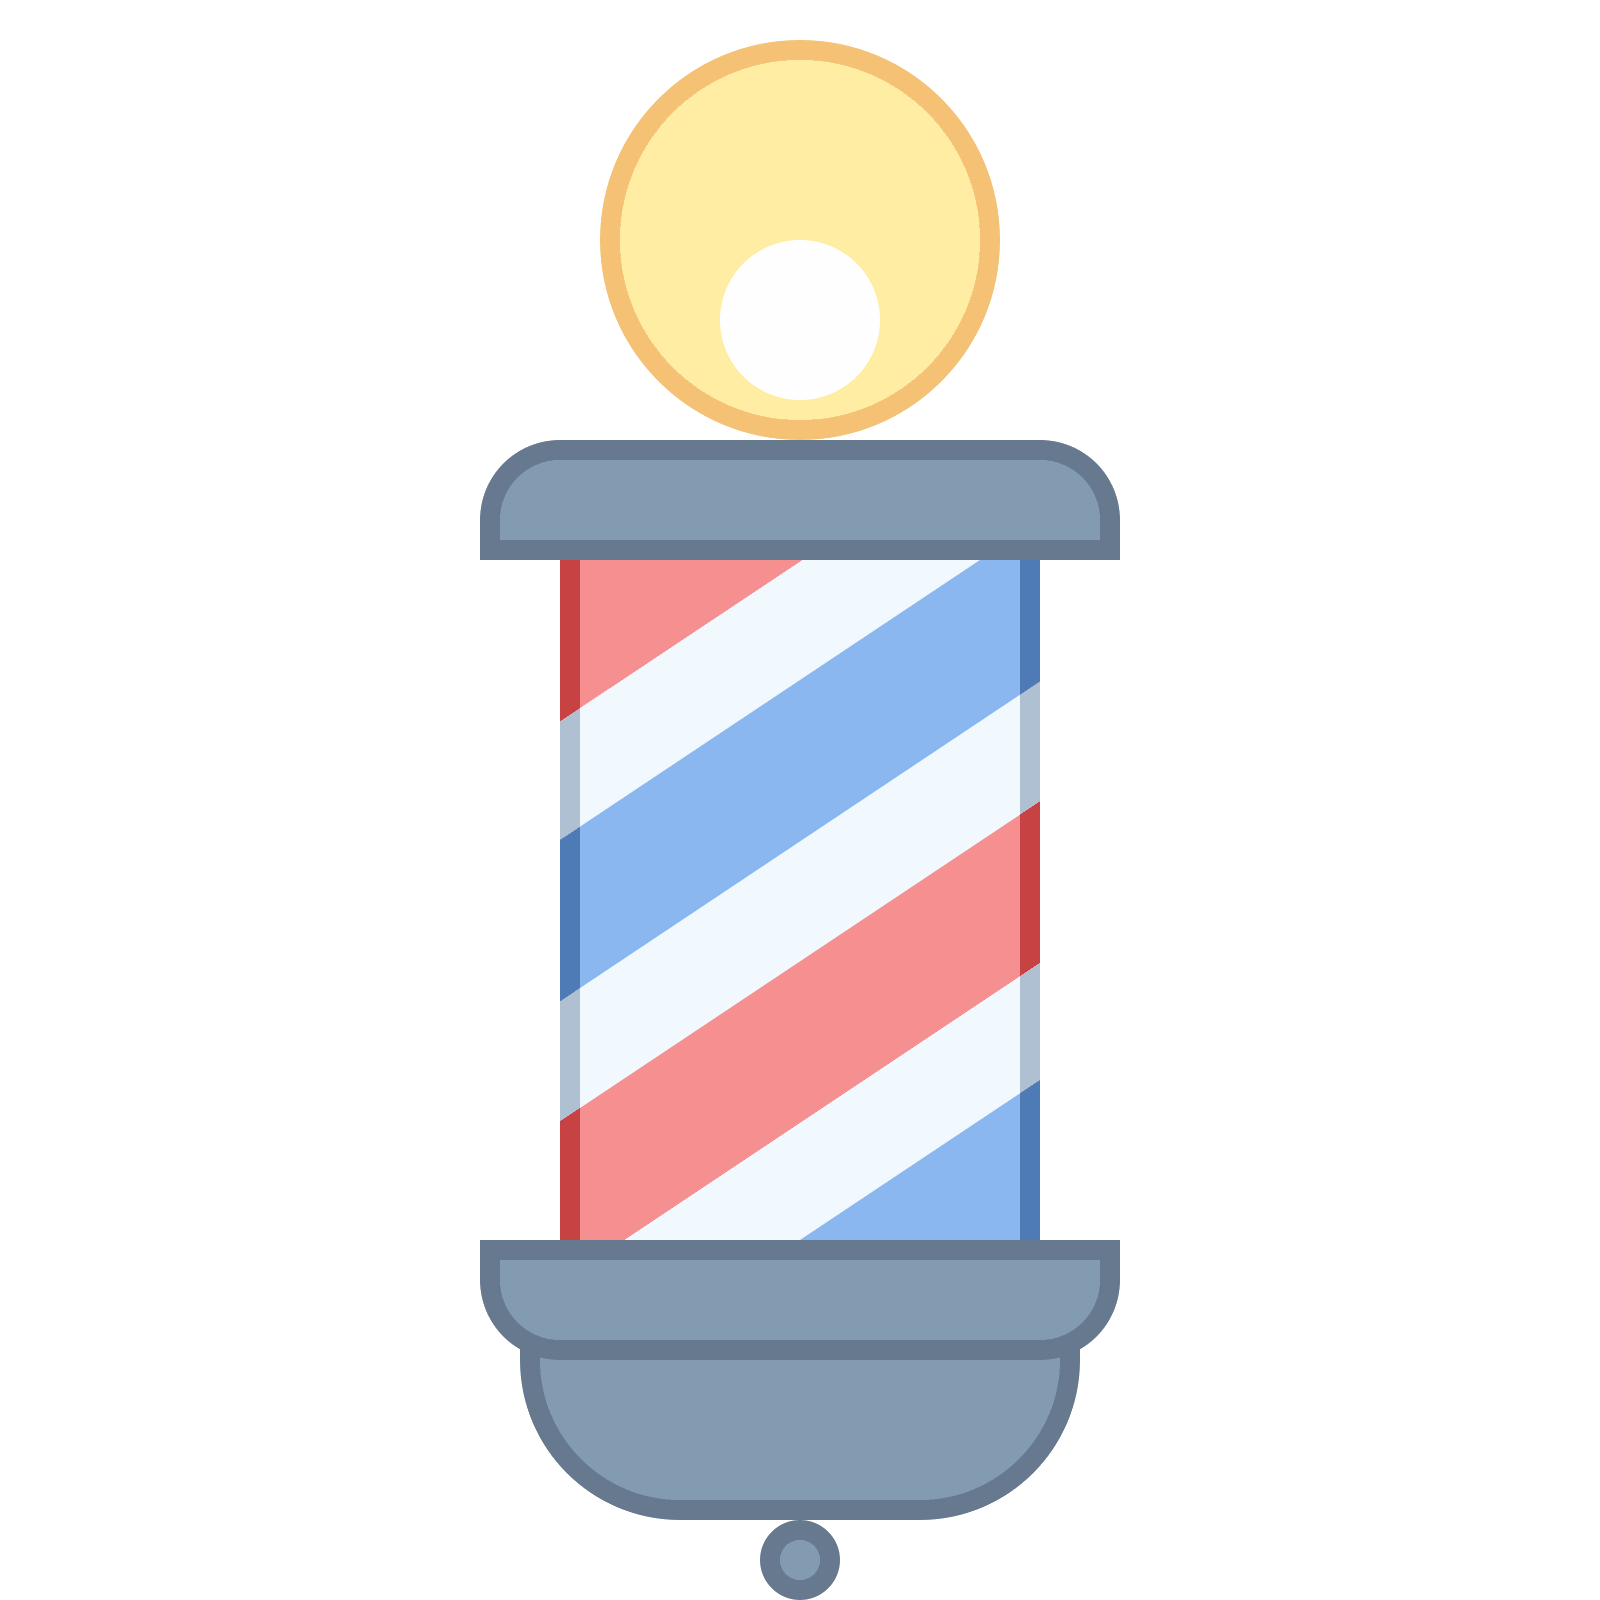 Pole vector cool. Barber icon free download